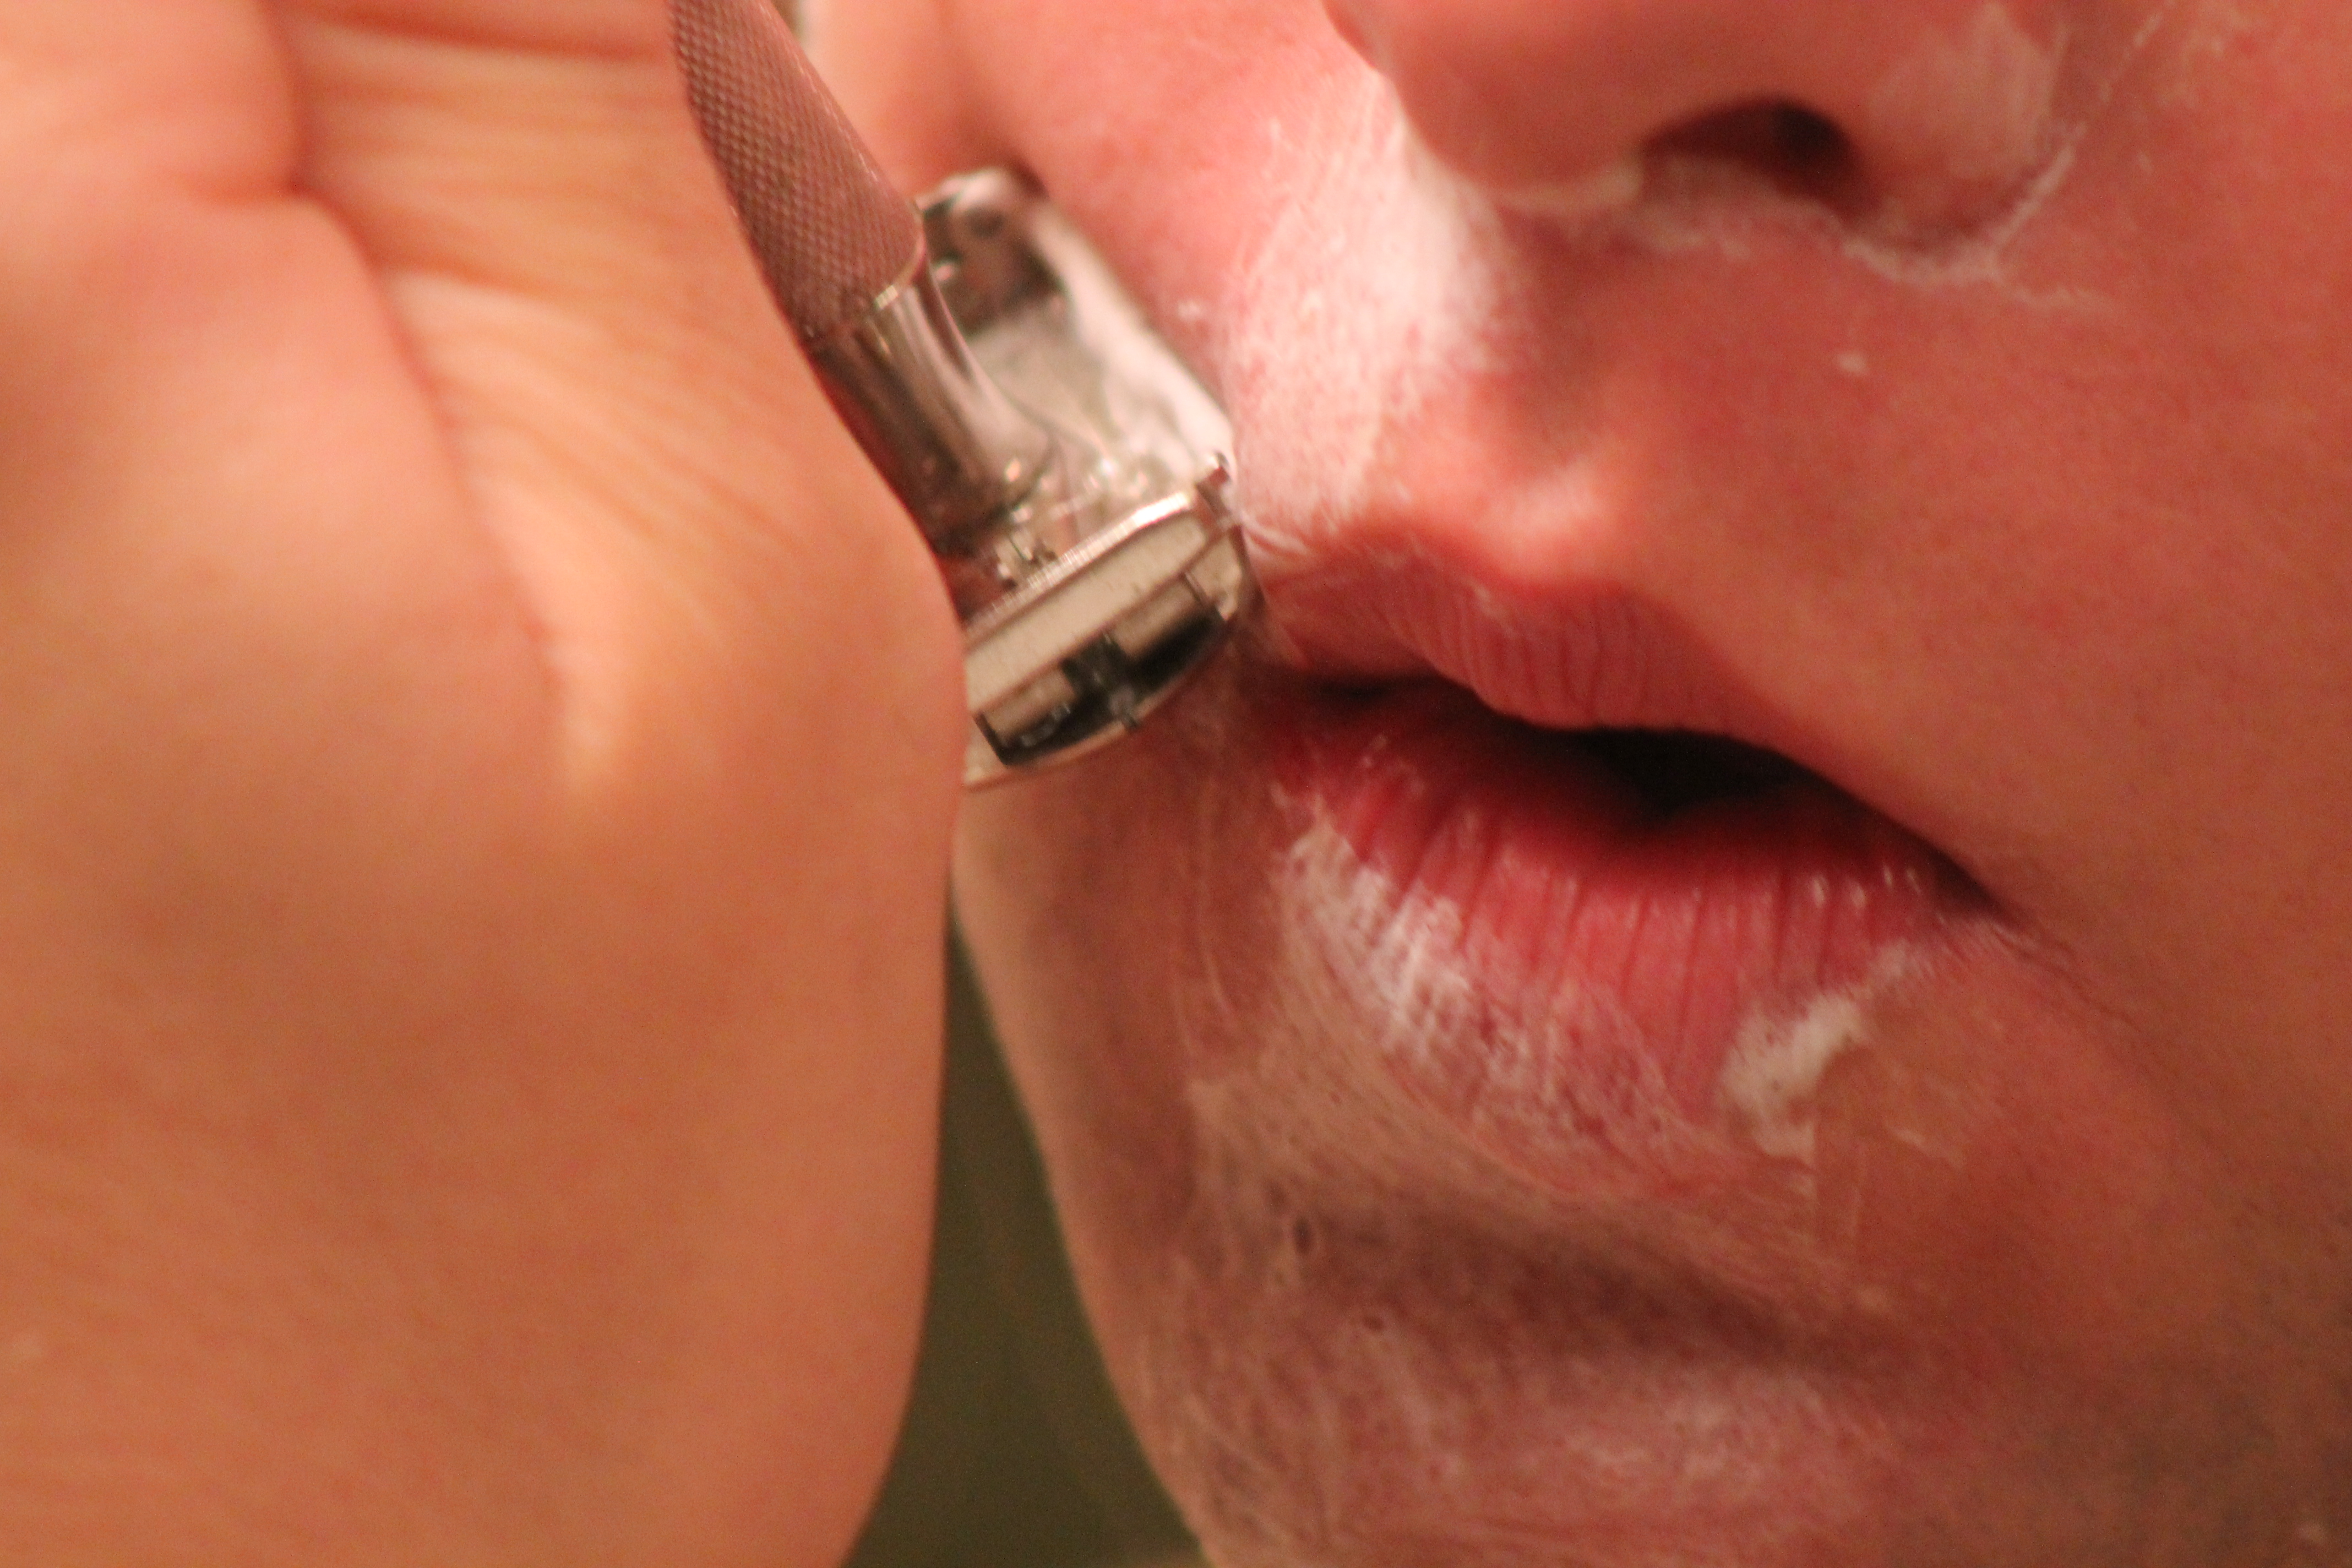 Opening shaved lips #5